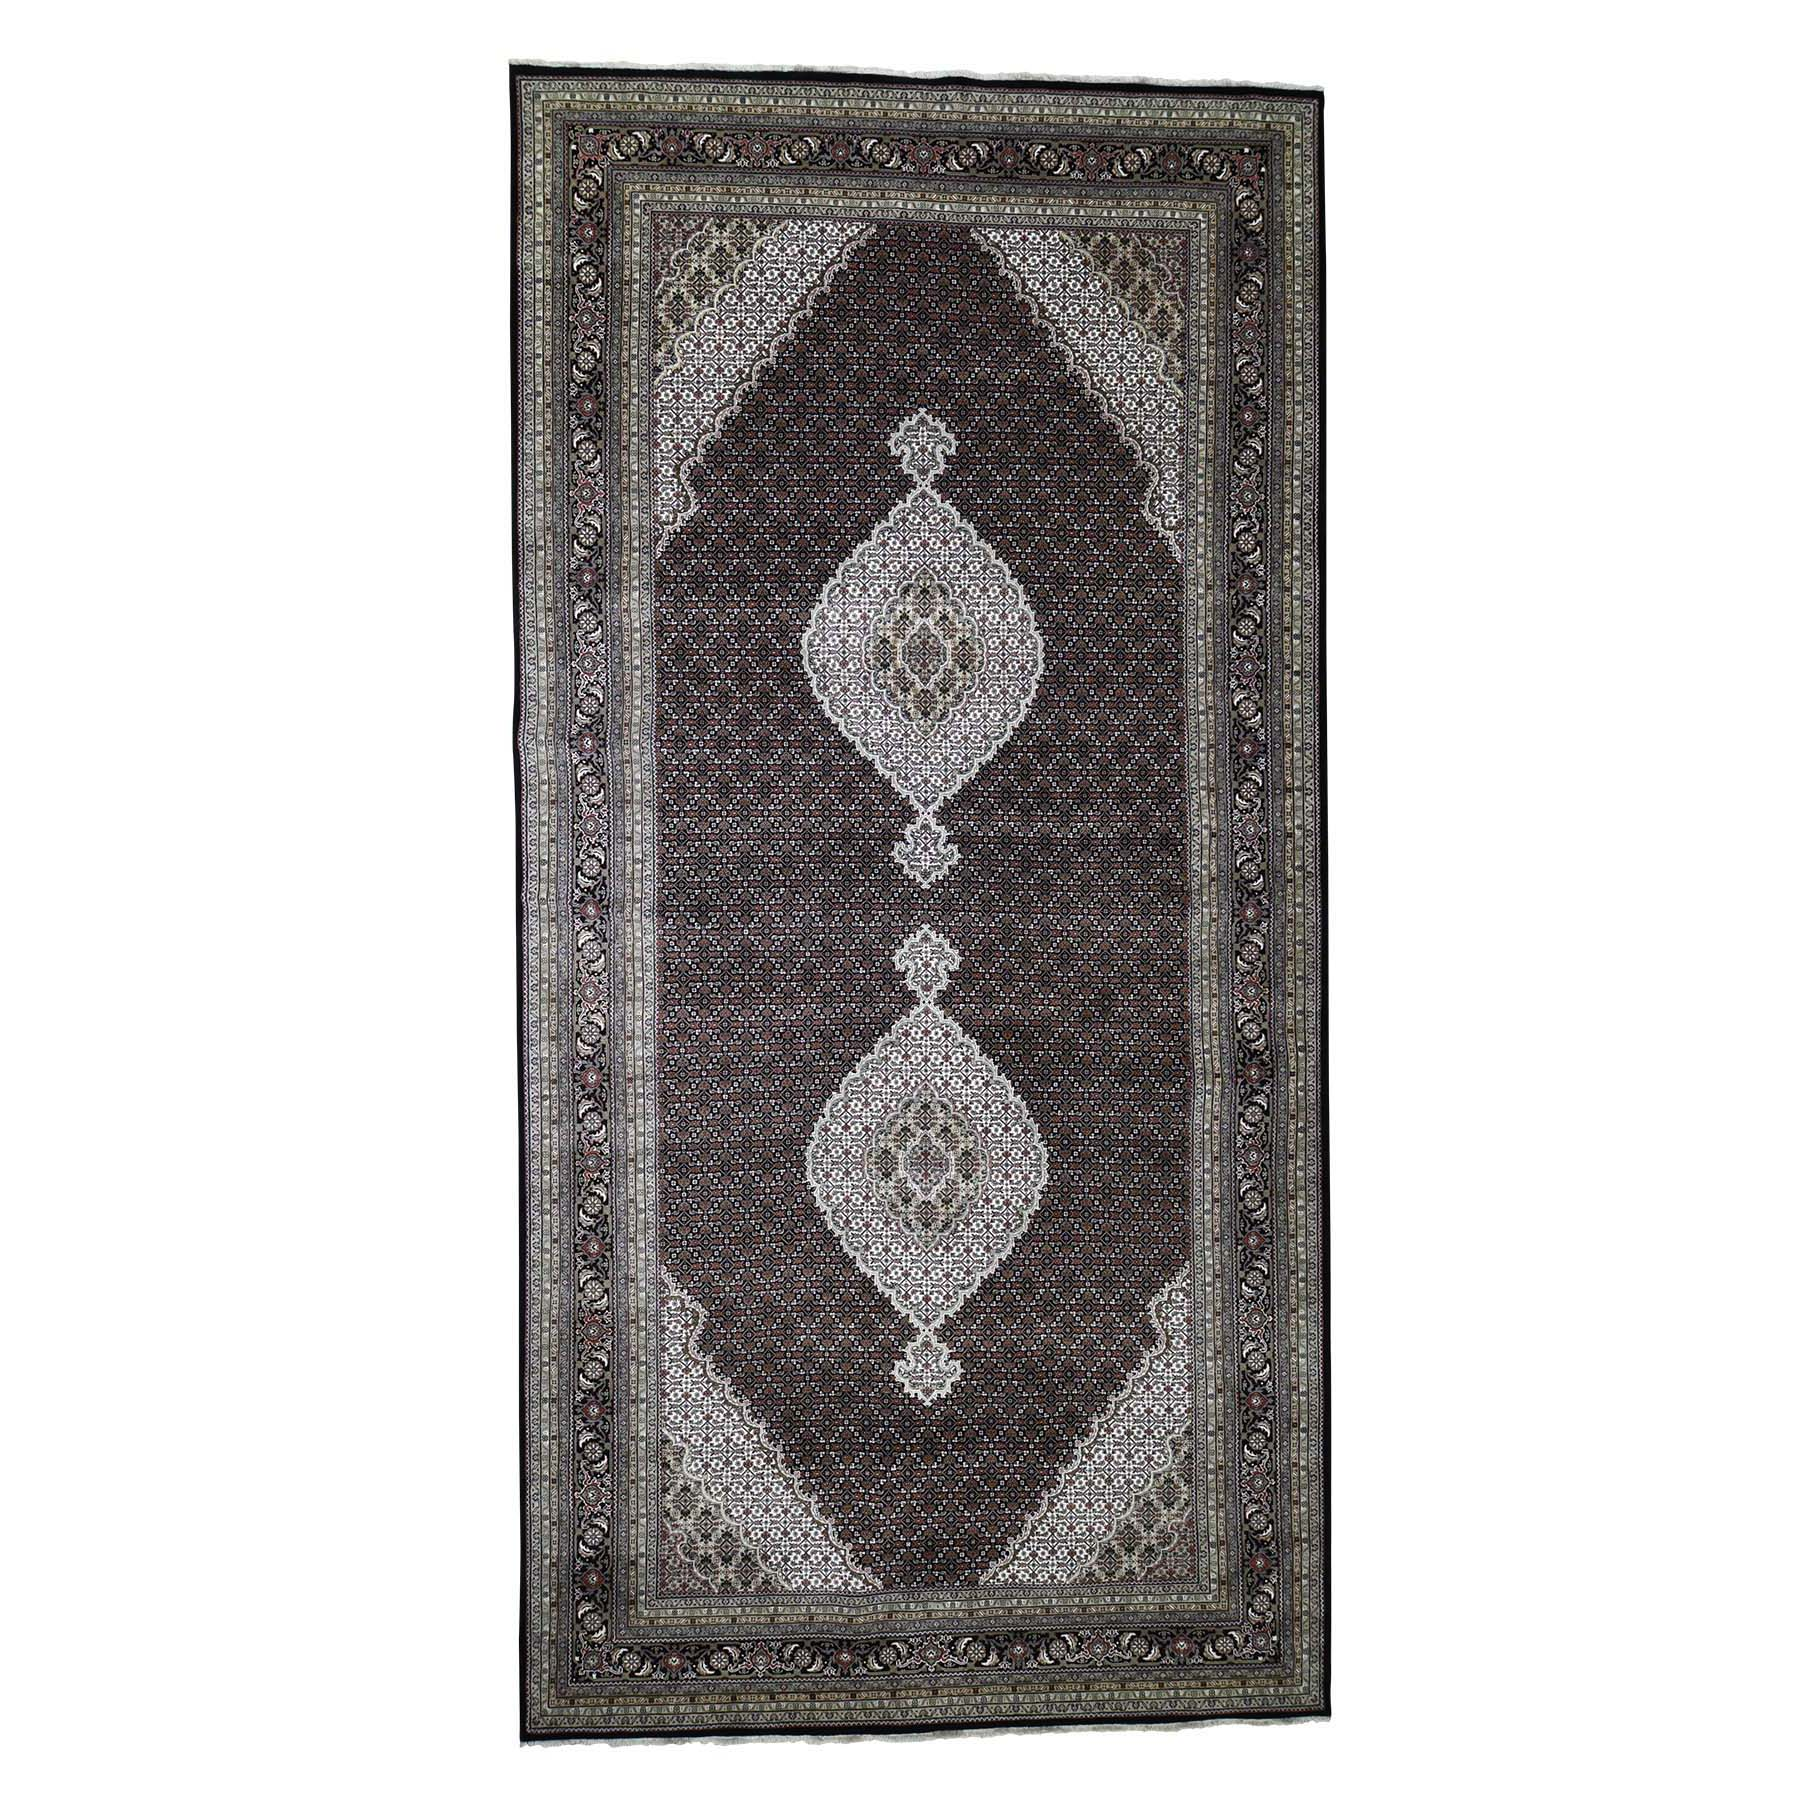 "9'x18'2"" Gallery Size Tabriz Mahi Design Wool and Silk Hand-Knotted Oriental Rug"